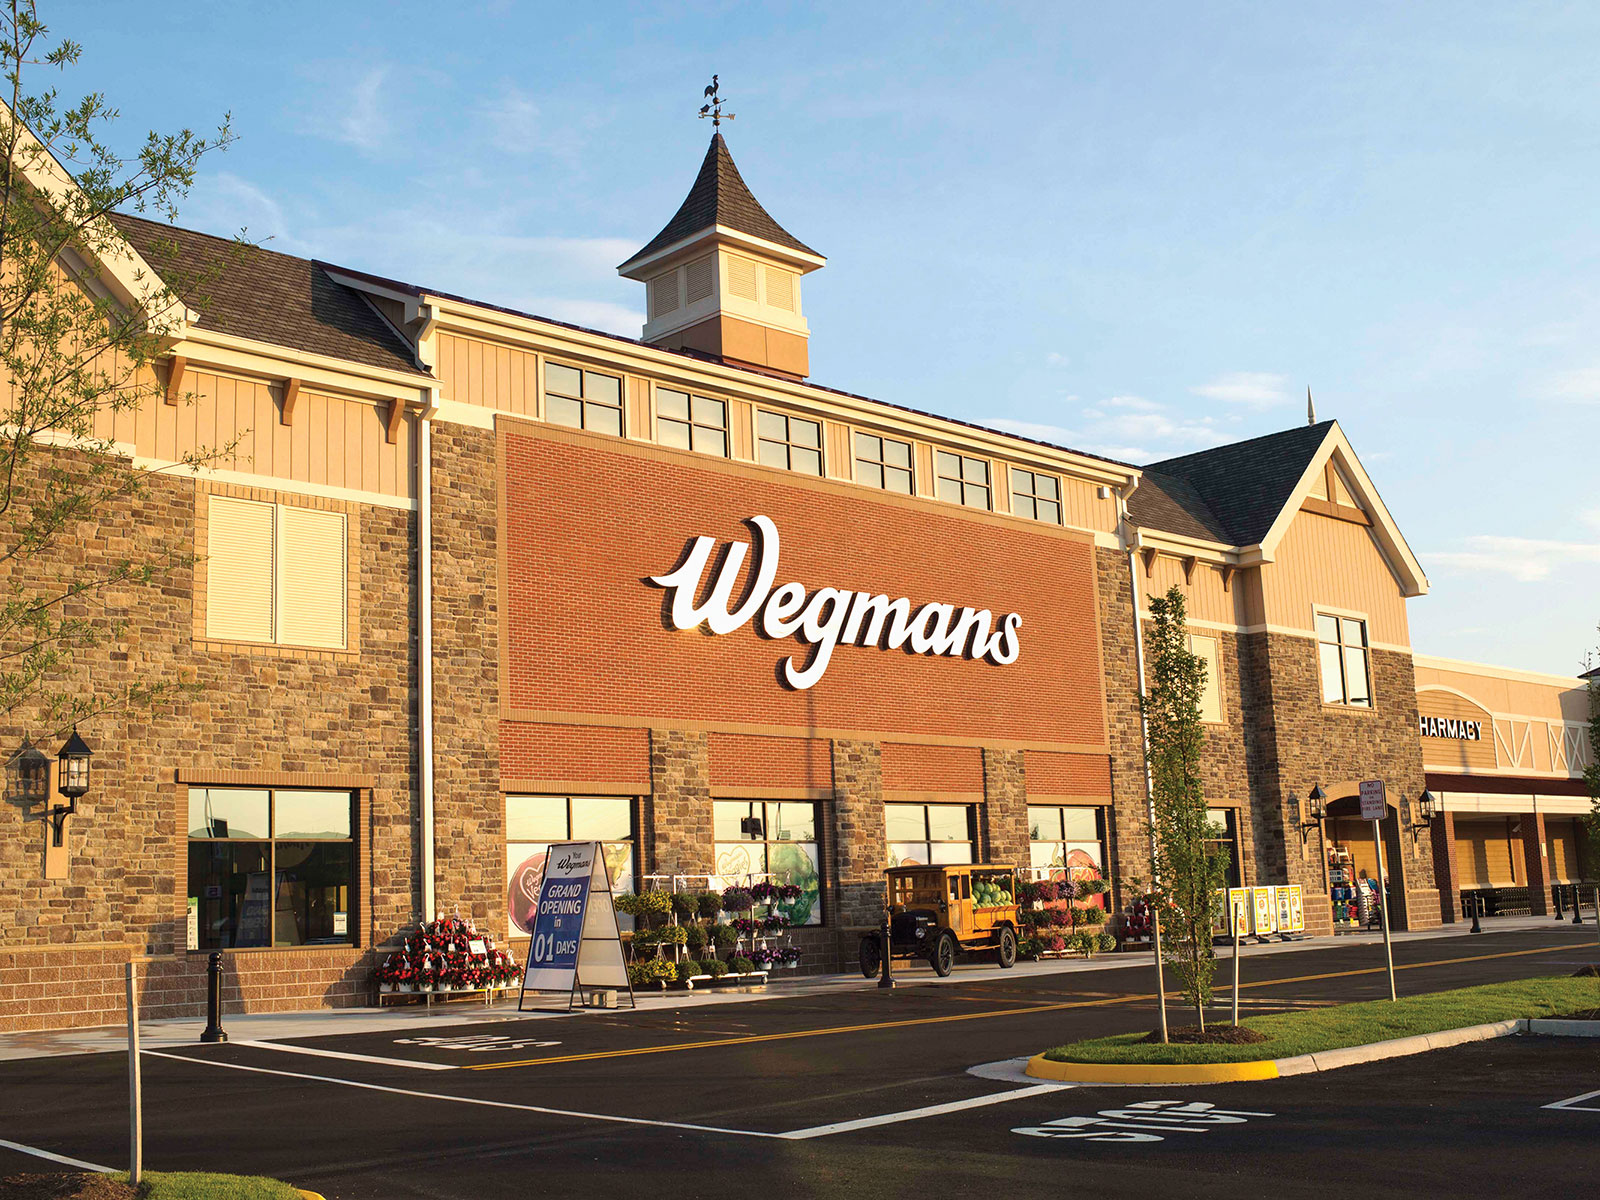 I Spent Nearly a Whole Day at Wegmans, And Here is What I